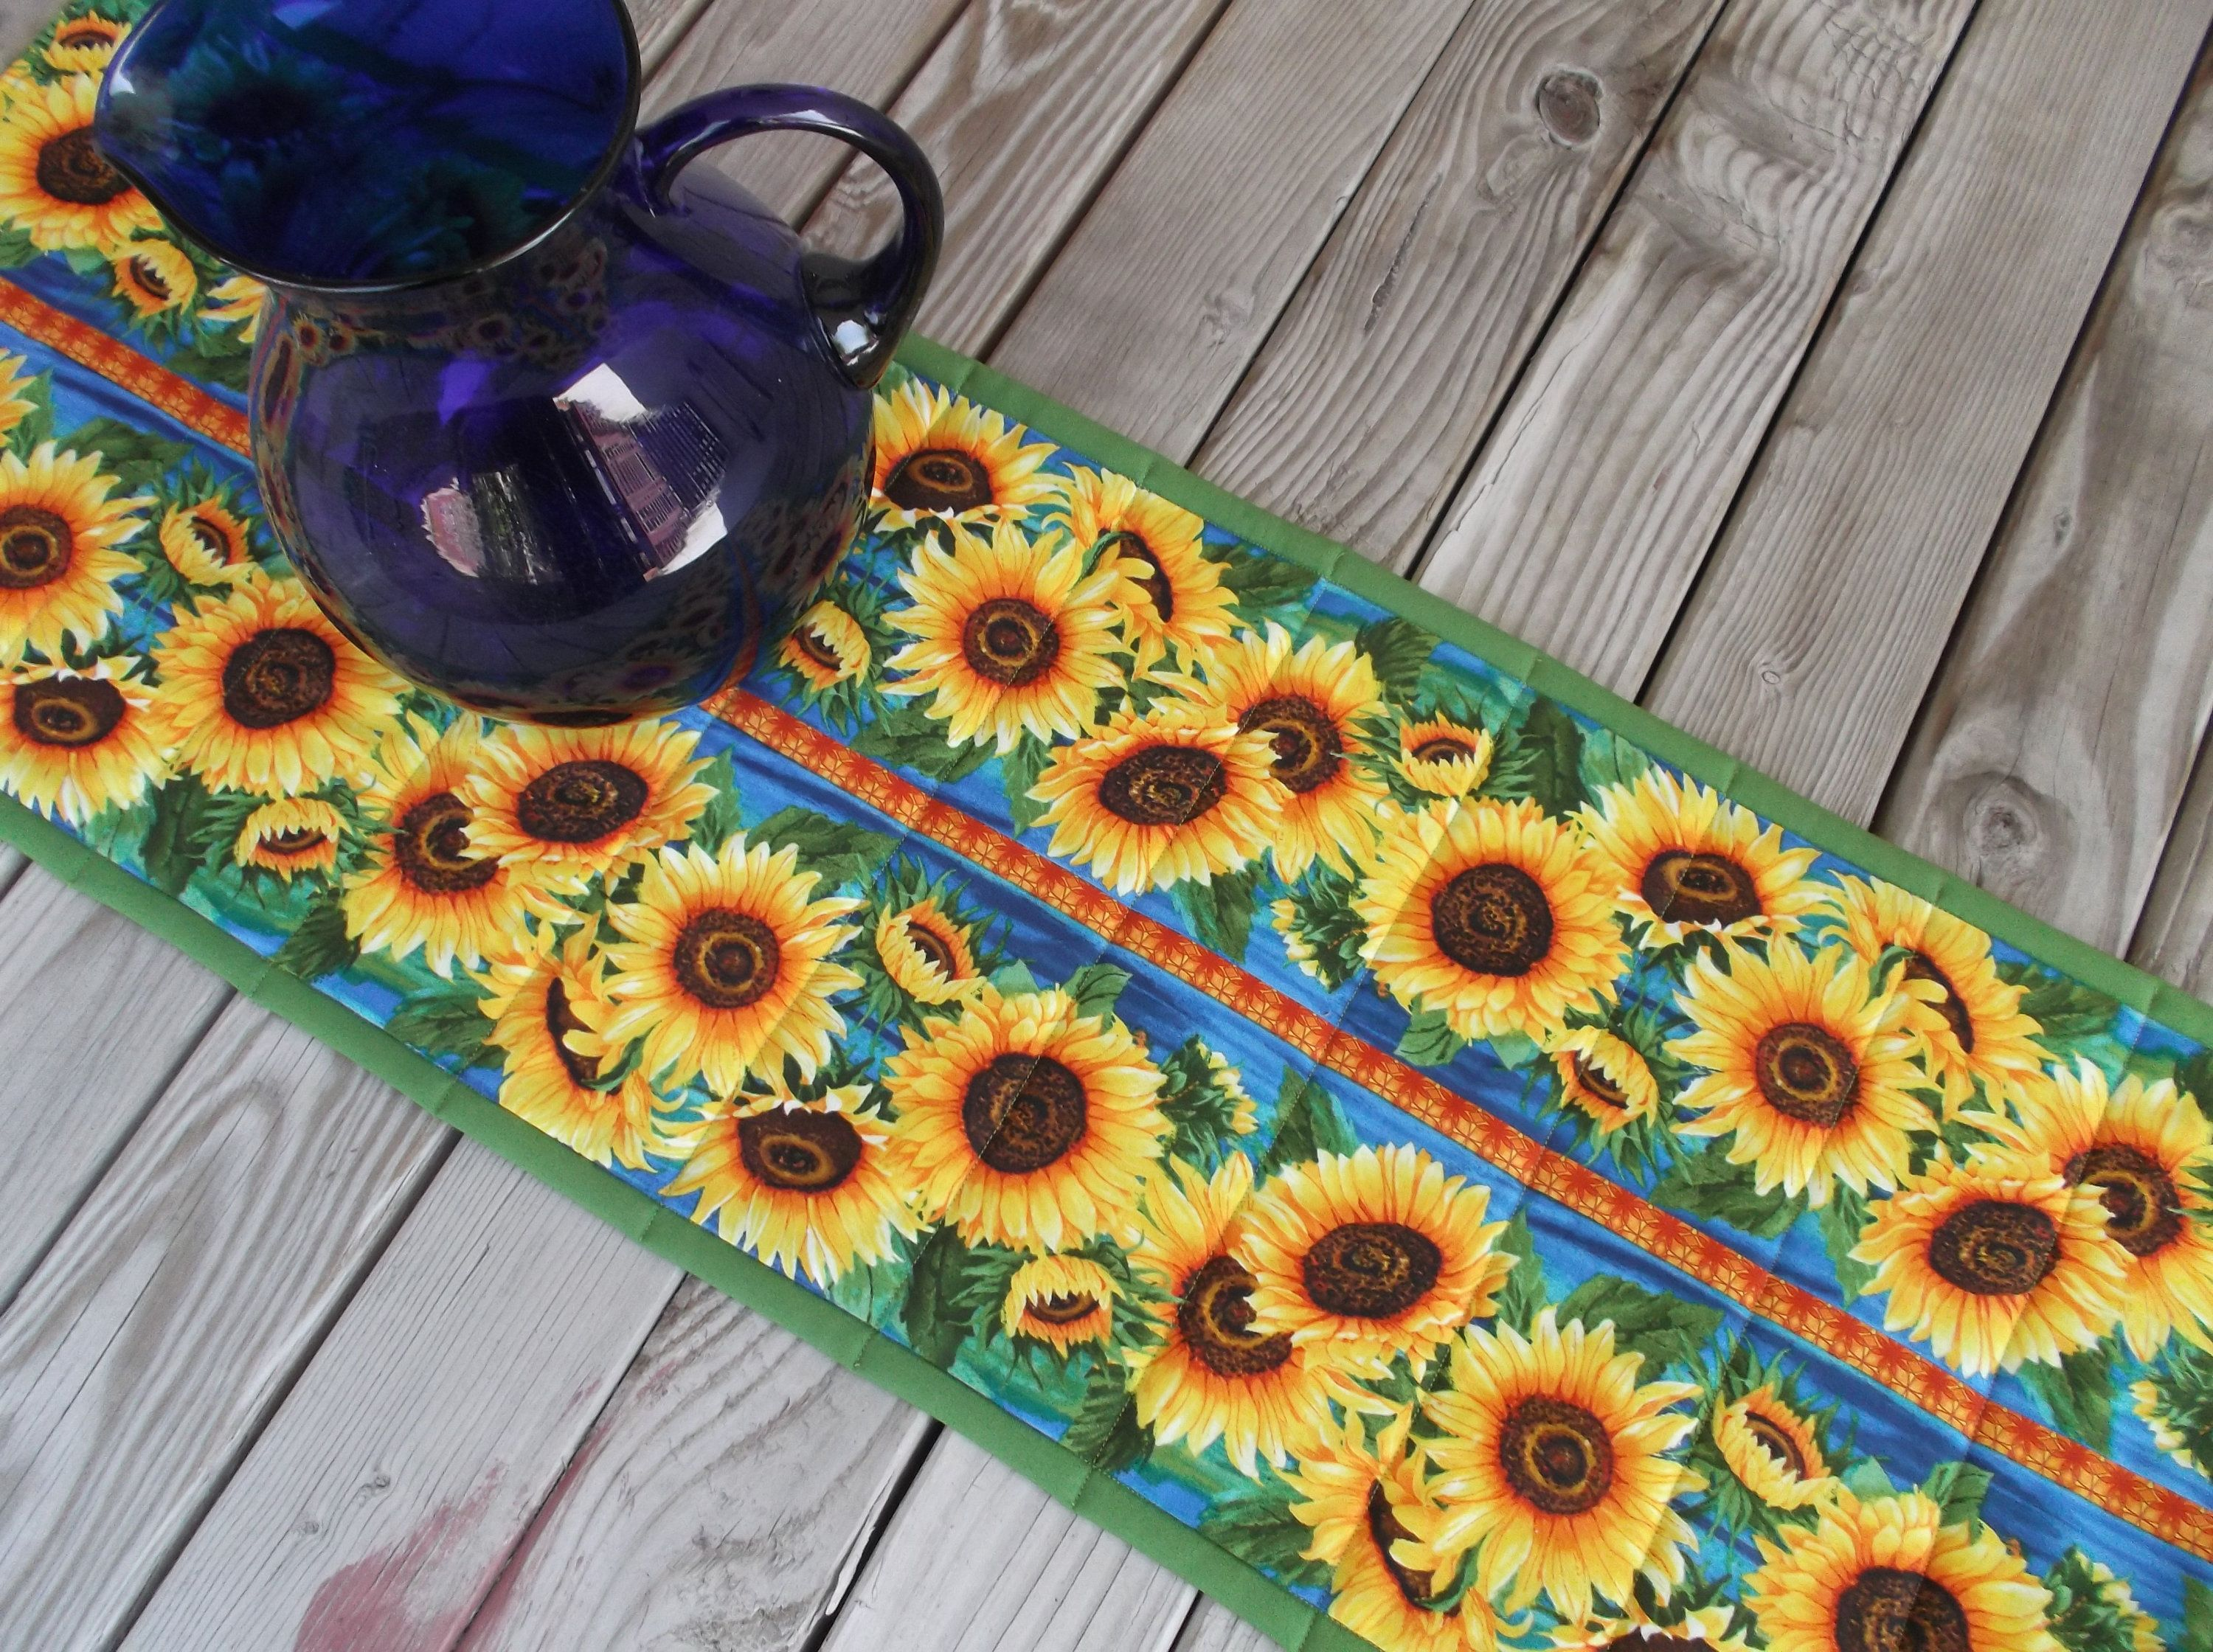 Sunflower Table Topper, Quilted Table Topper, Handmade Table Topper, Table  Runner, Sideboard Runner, 37 Inches